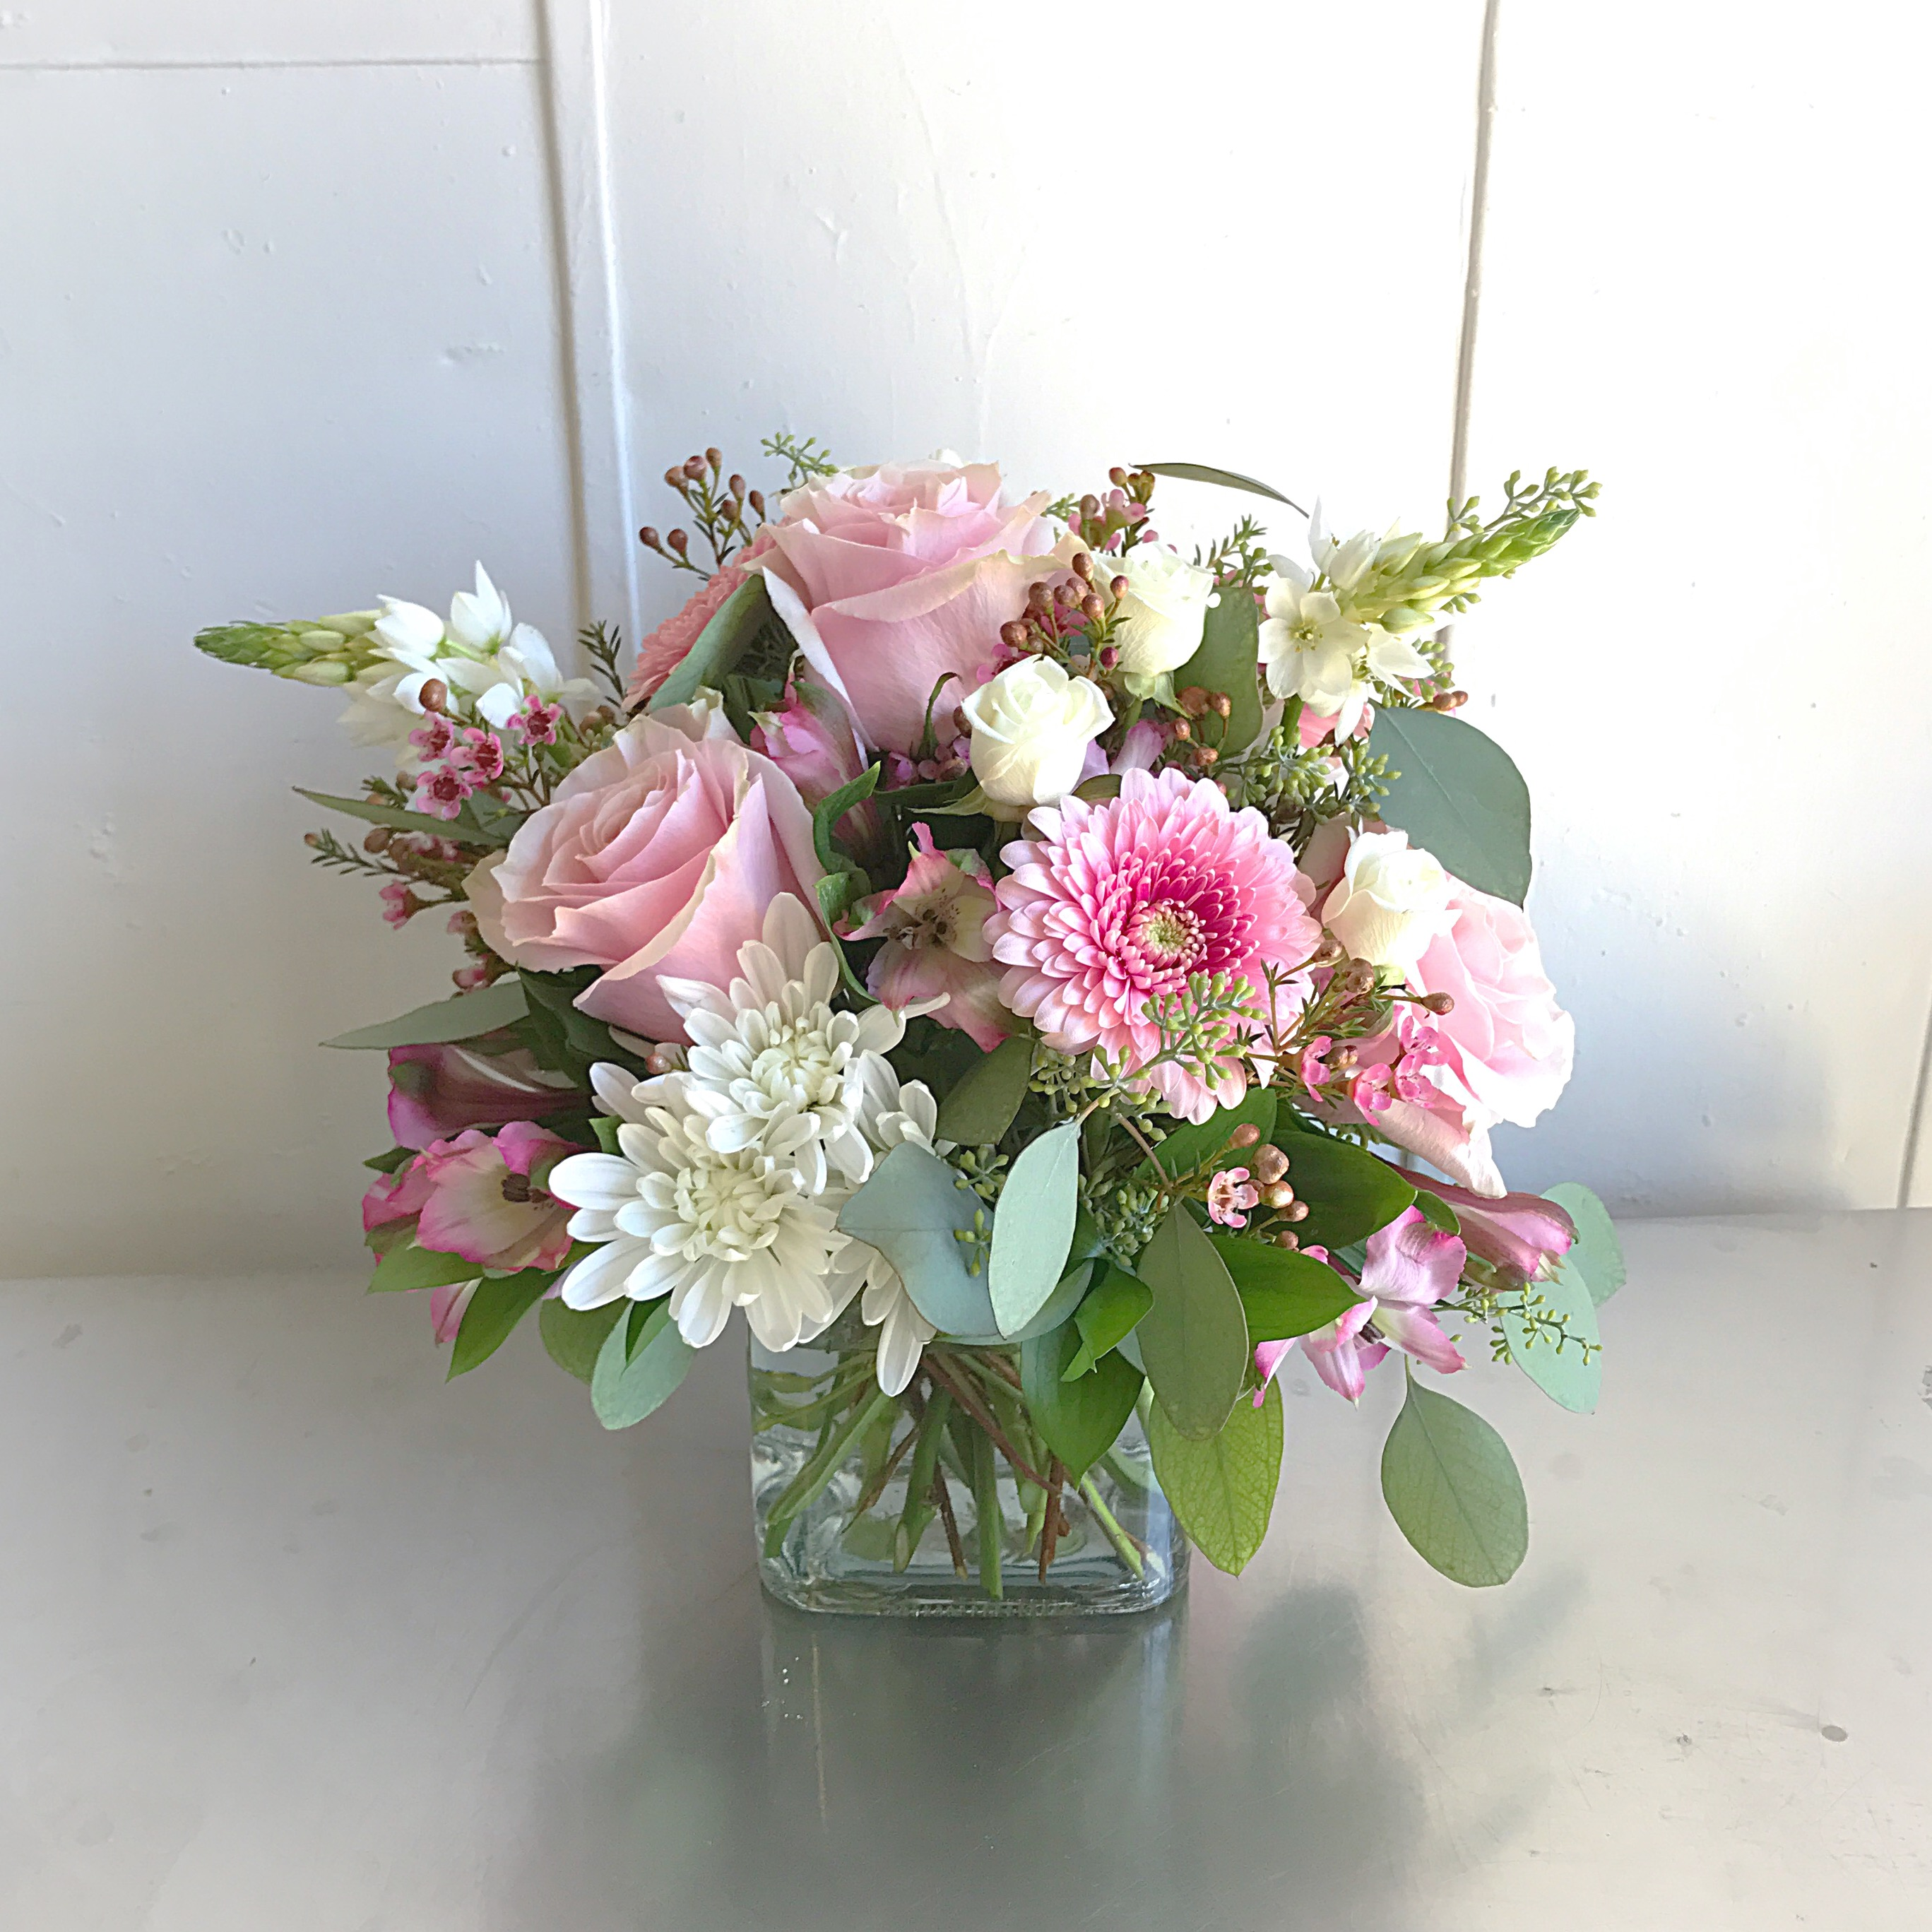 Flower arrangements gallery floral sunshine muted white pink small flowers cookies mightylinksfo